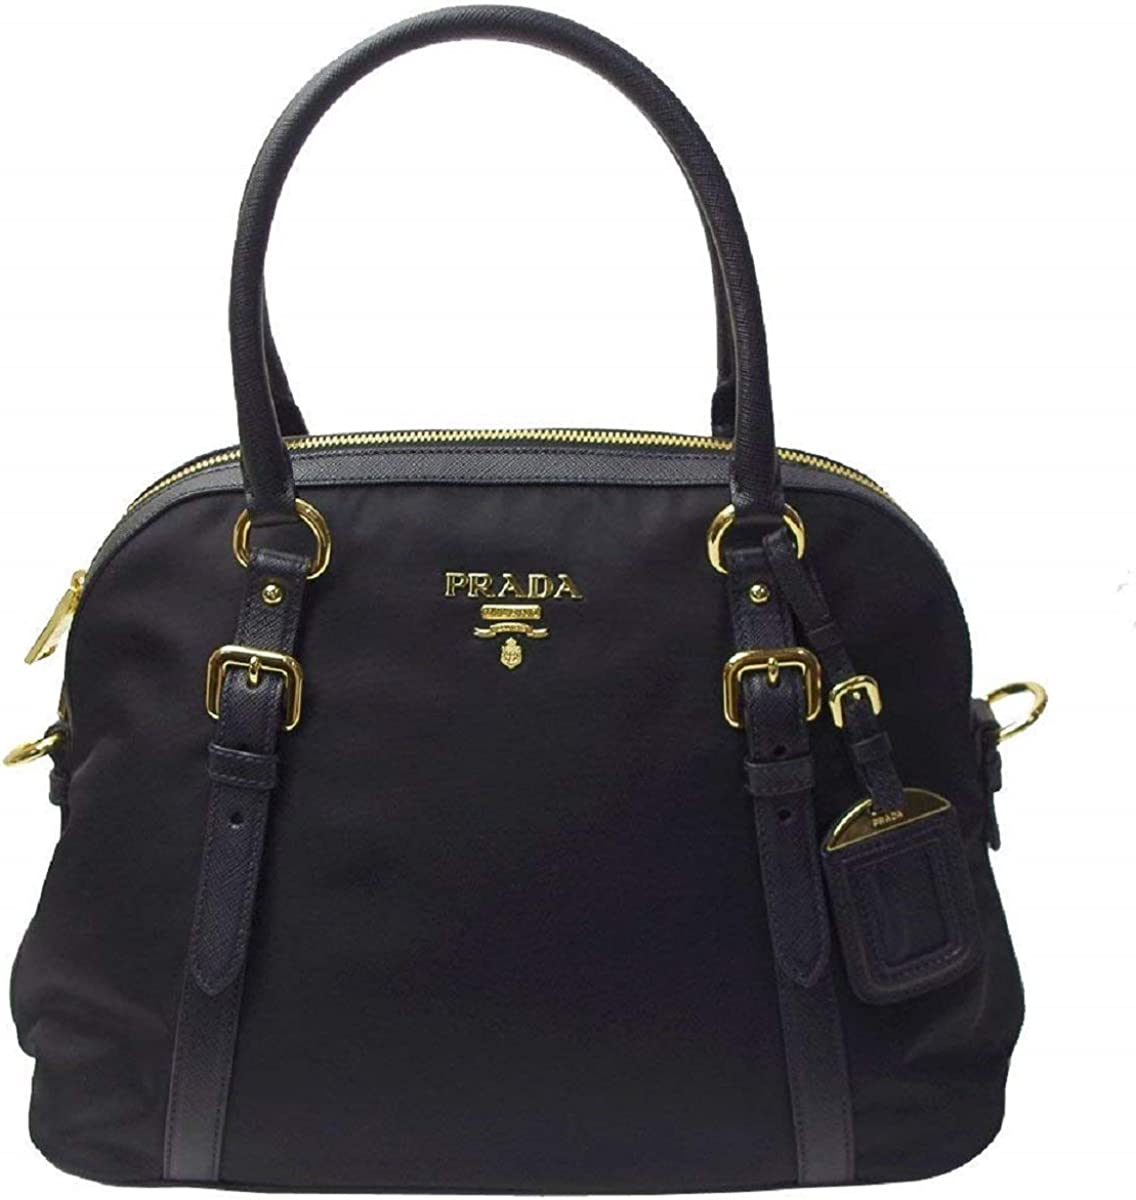 Prada Tessuto Nylon and Saffiano Leather Black Satchel 1BB013